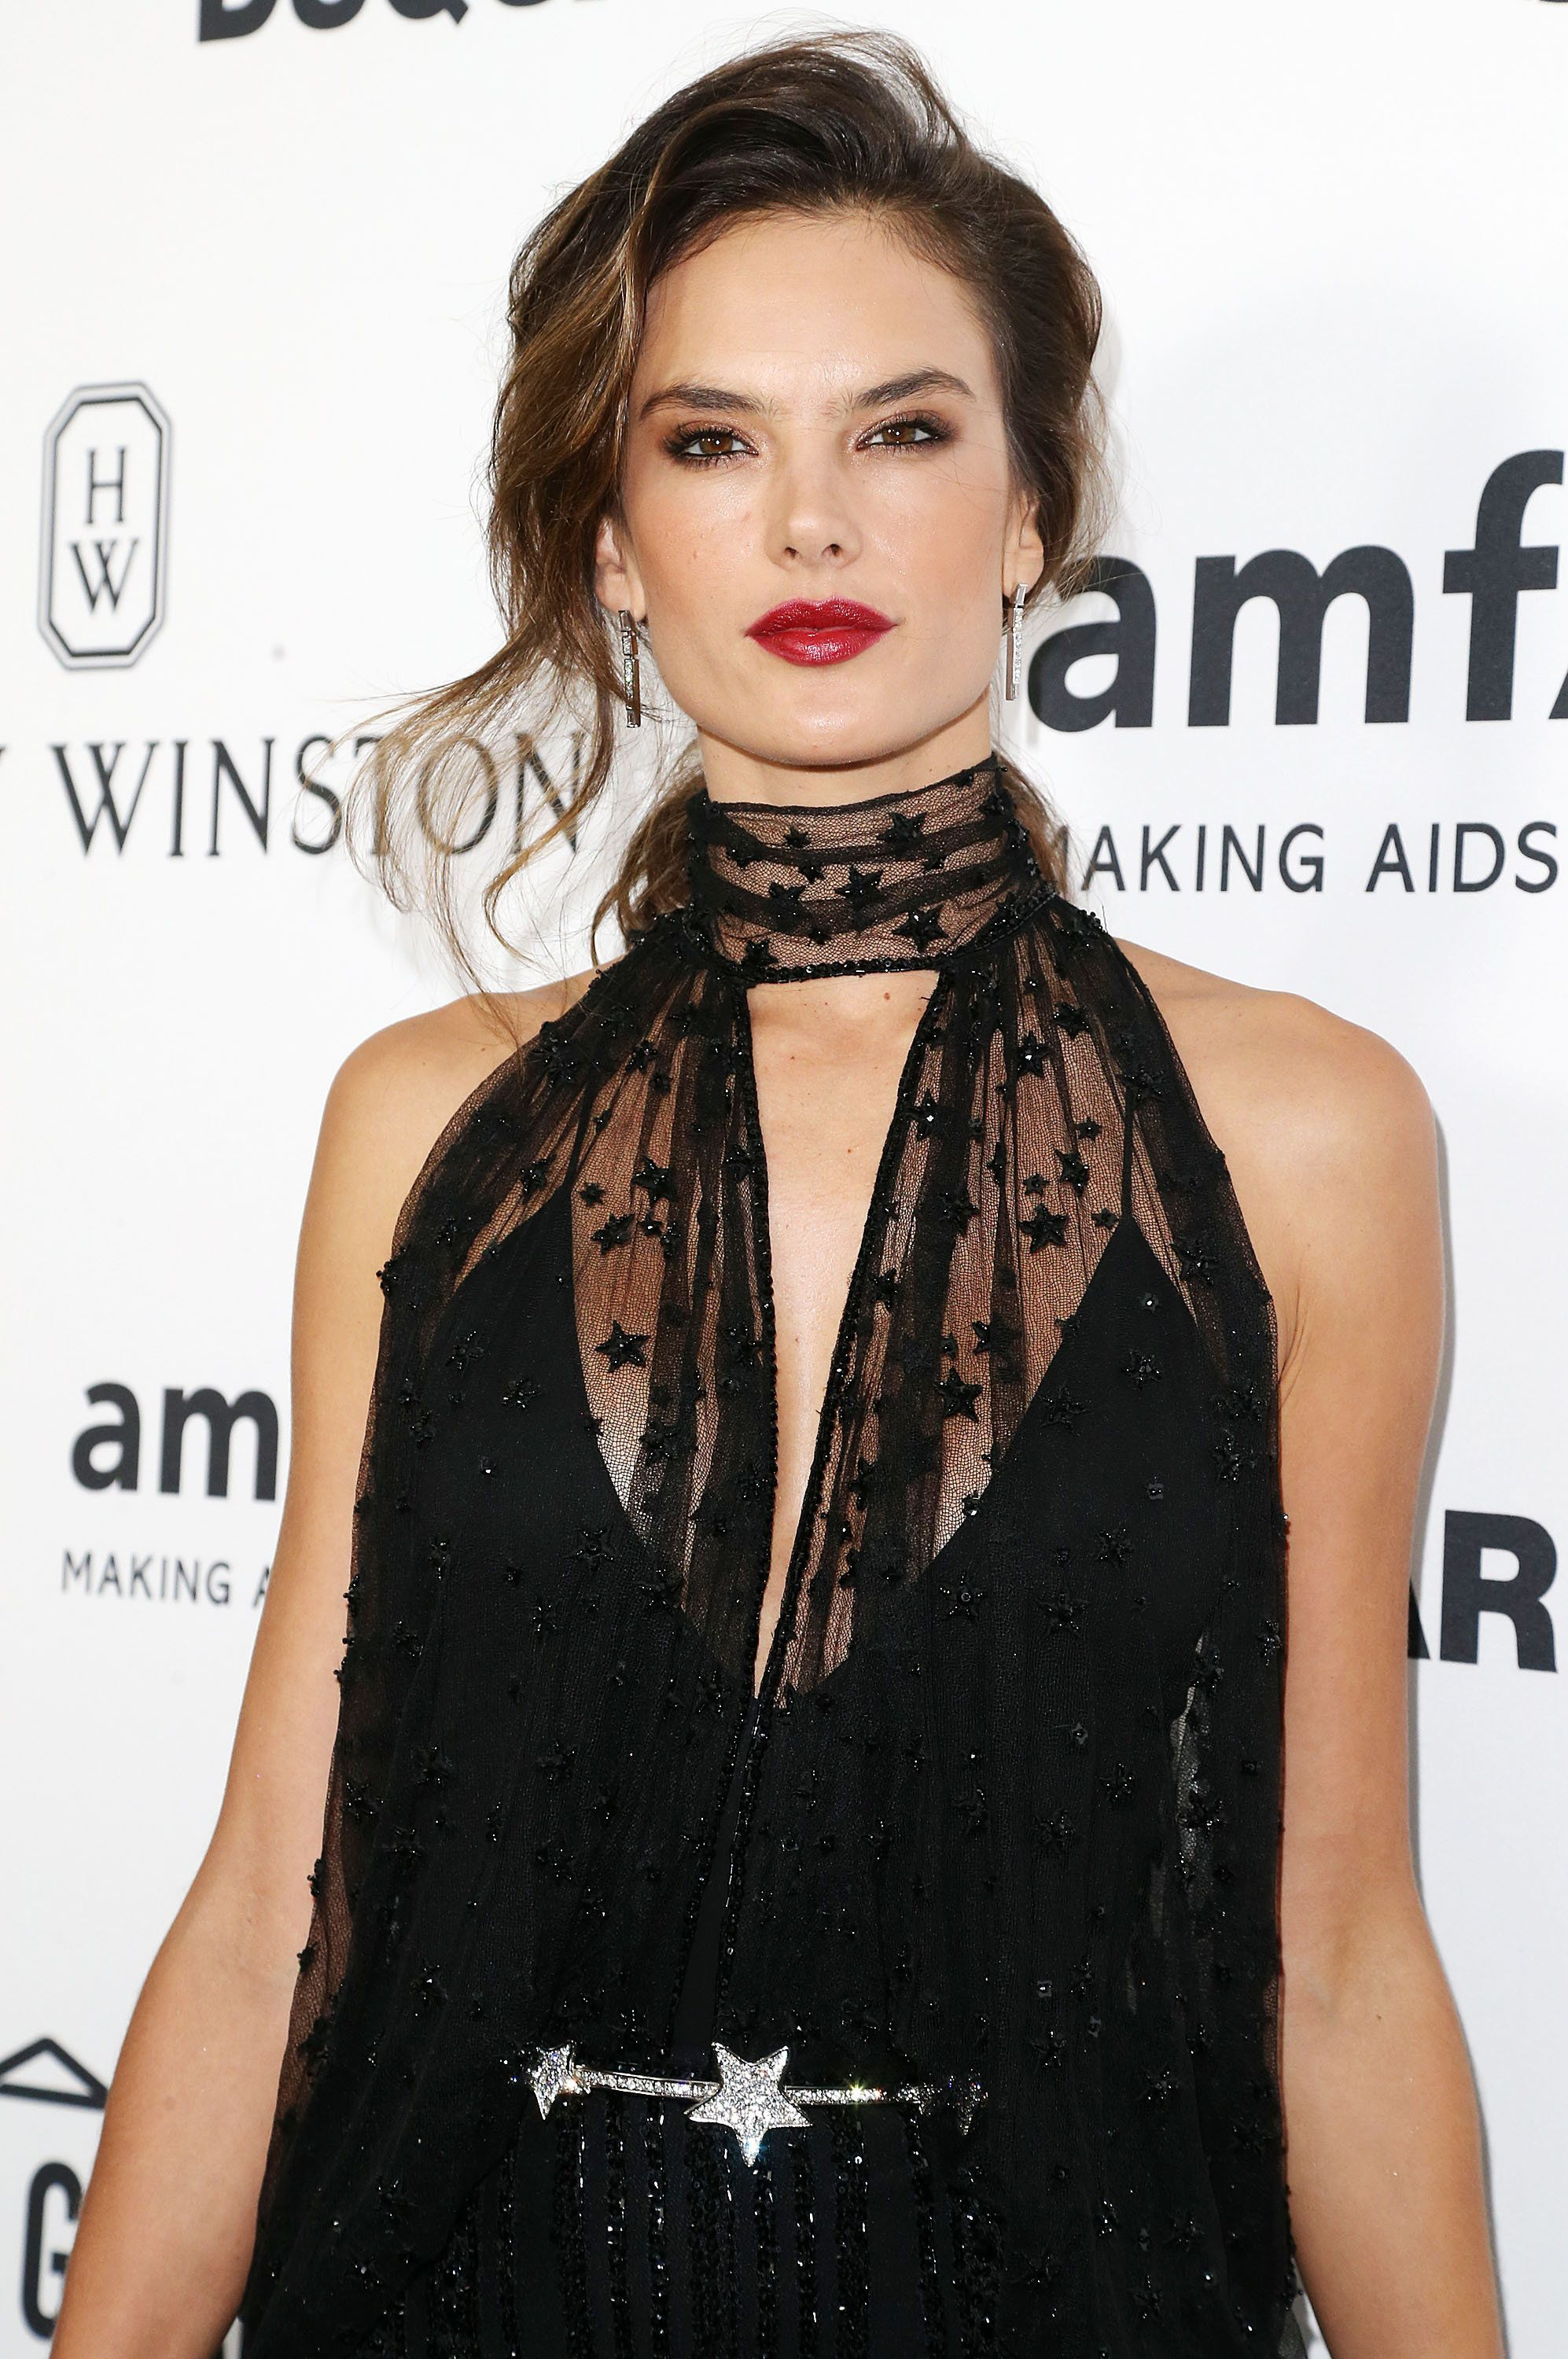 HOLLYWOOD, CA - OCTOBER 29:  Model Alessandra Ambrosio attends amfAR's Inspiration Gala Los Angeles at Milk Studios on October 29, 2015 in Hollywood, California.  (Photo by Frederick M. Brown/Getty Images)